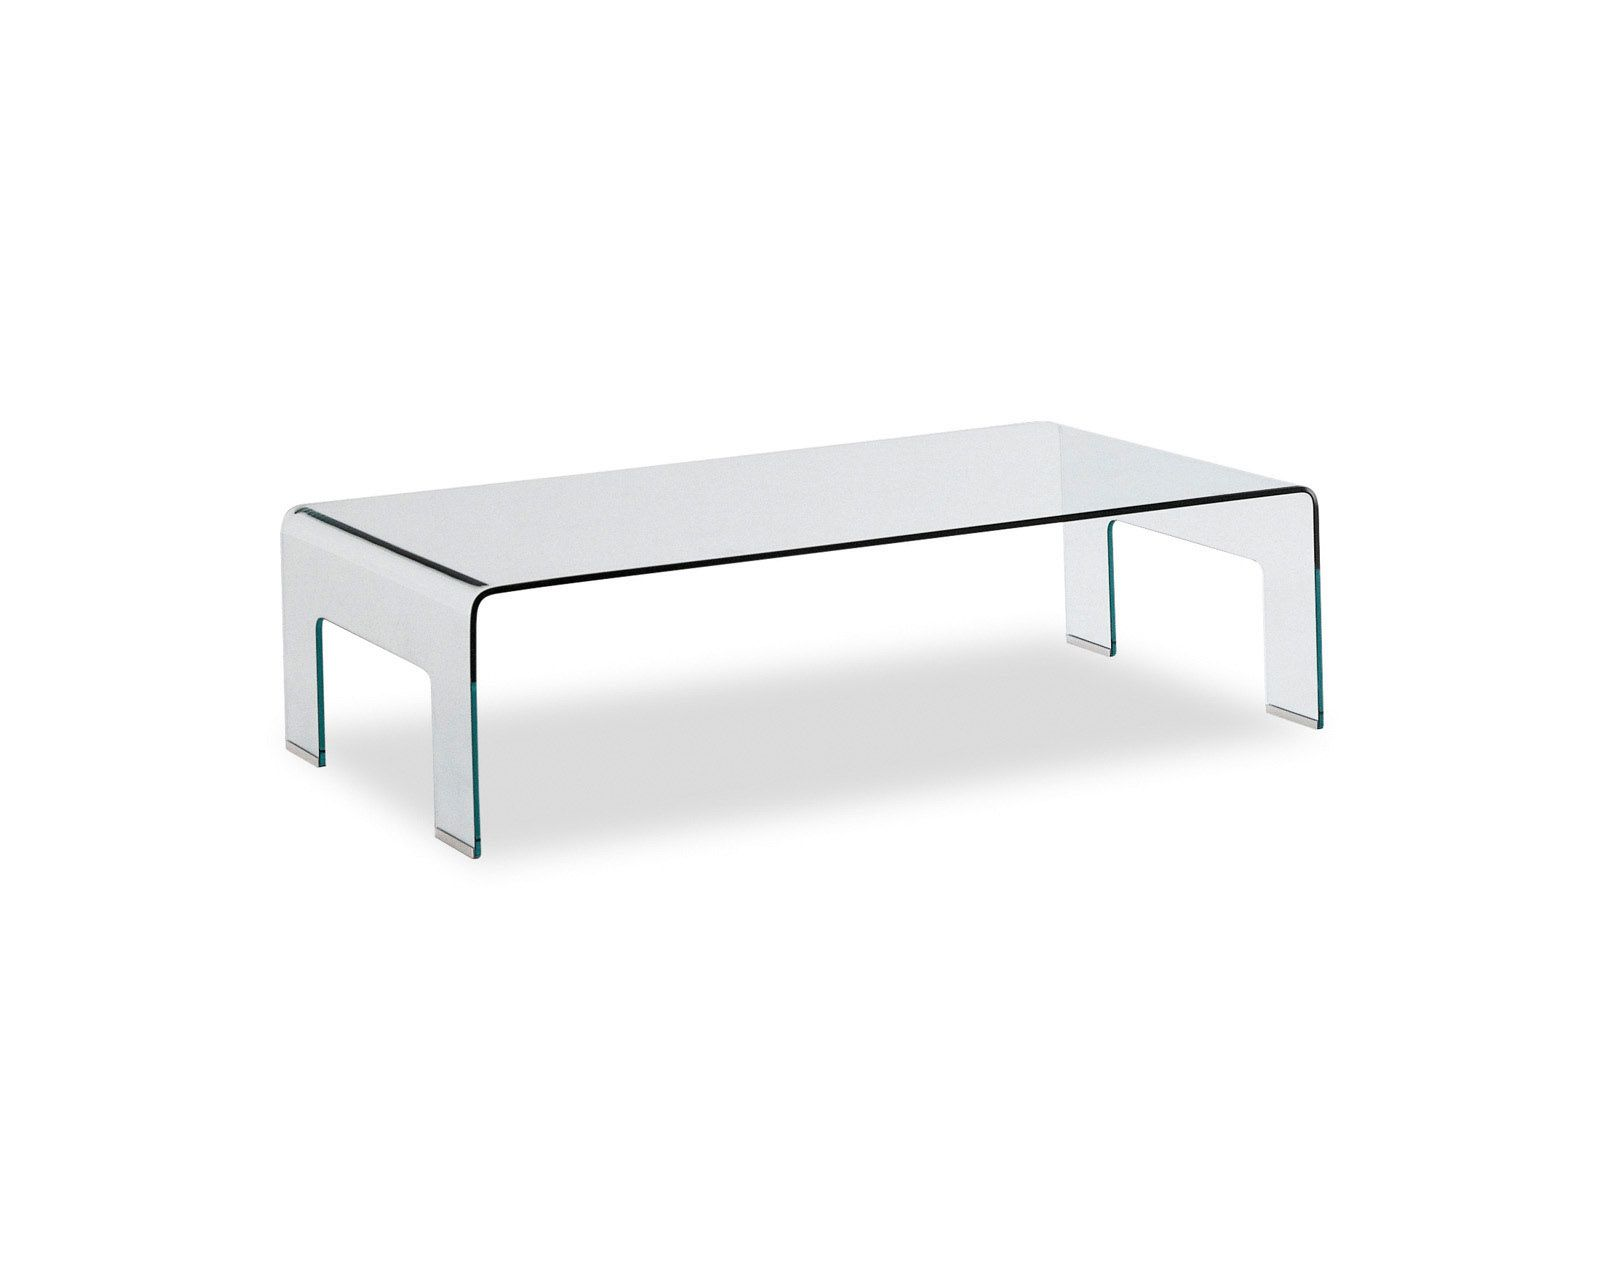 REAL Glass rectangular coffee table REAL model large sized glass